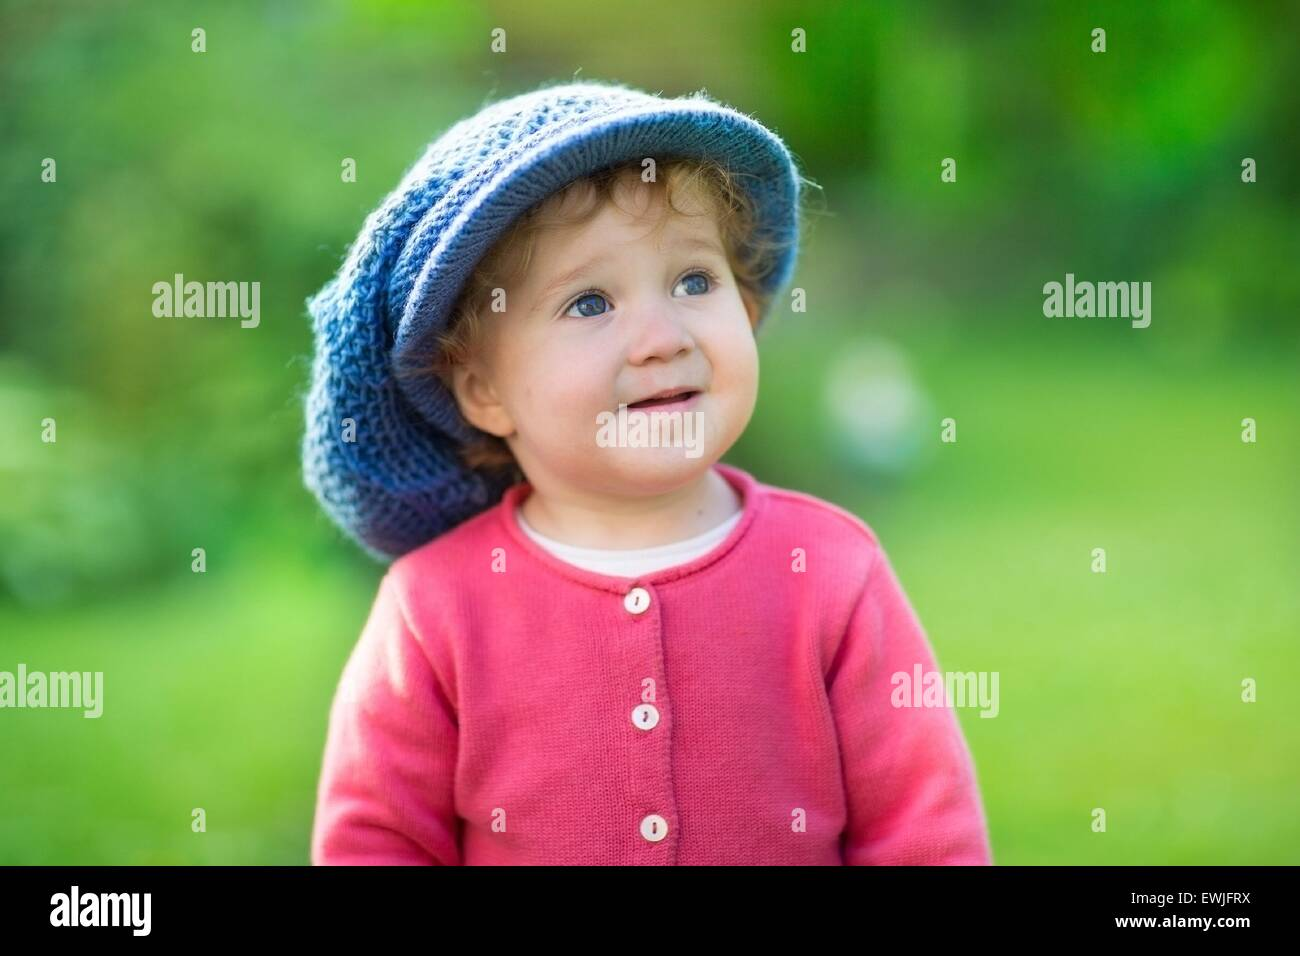 1c6a2c22e8a Funny baby girl wearing a big knitted hat playing in a sunny garden on a  warm autumn day